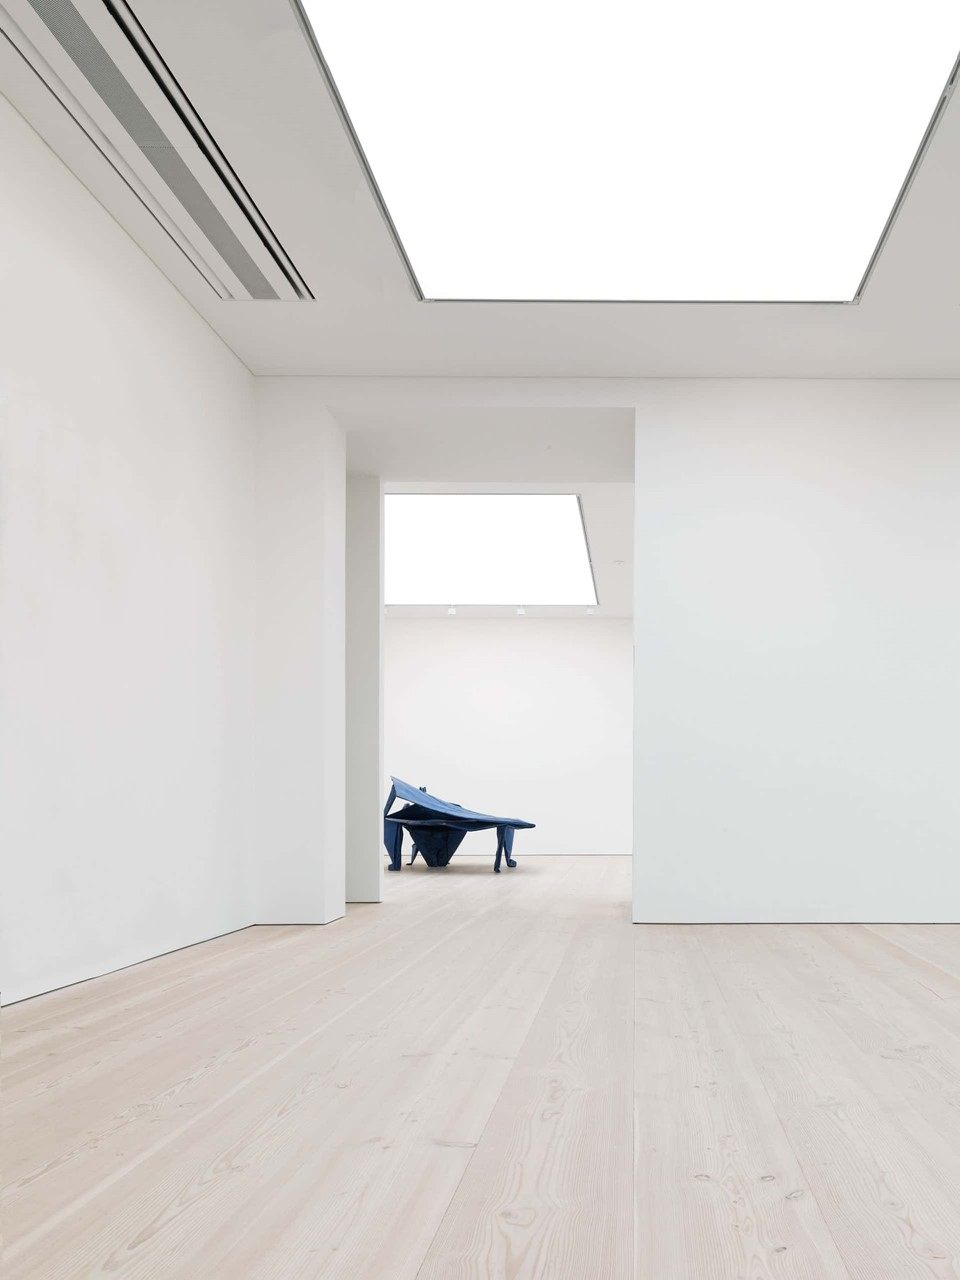 douglas-fir-flooring_lye-white-soap_saatchi-gallery_art_piano_dinesen.jpg